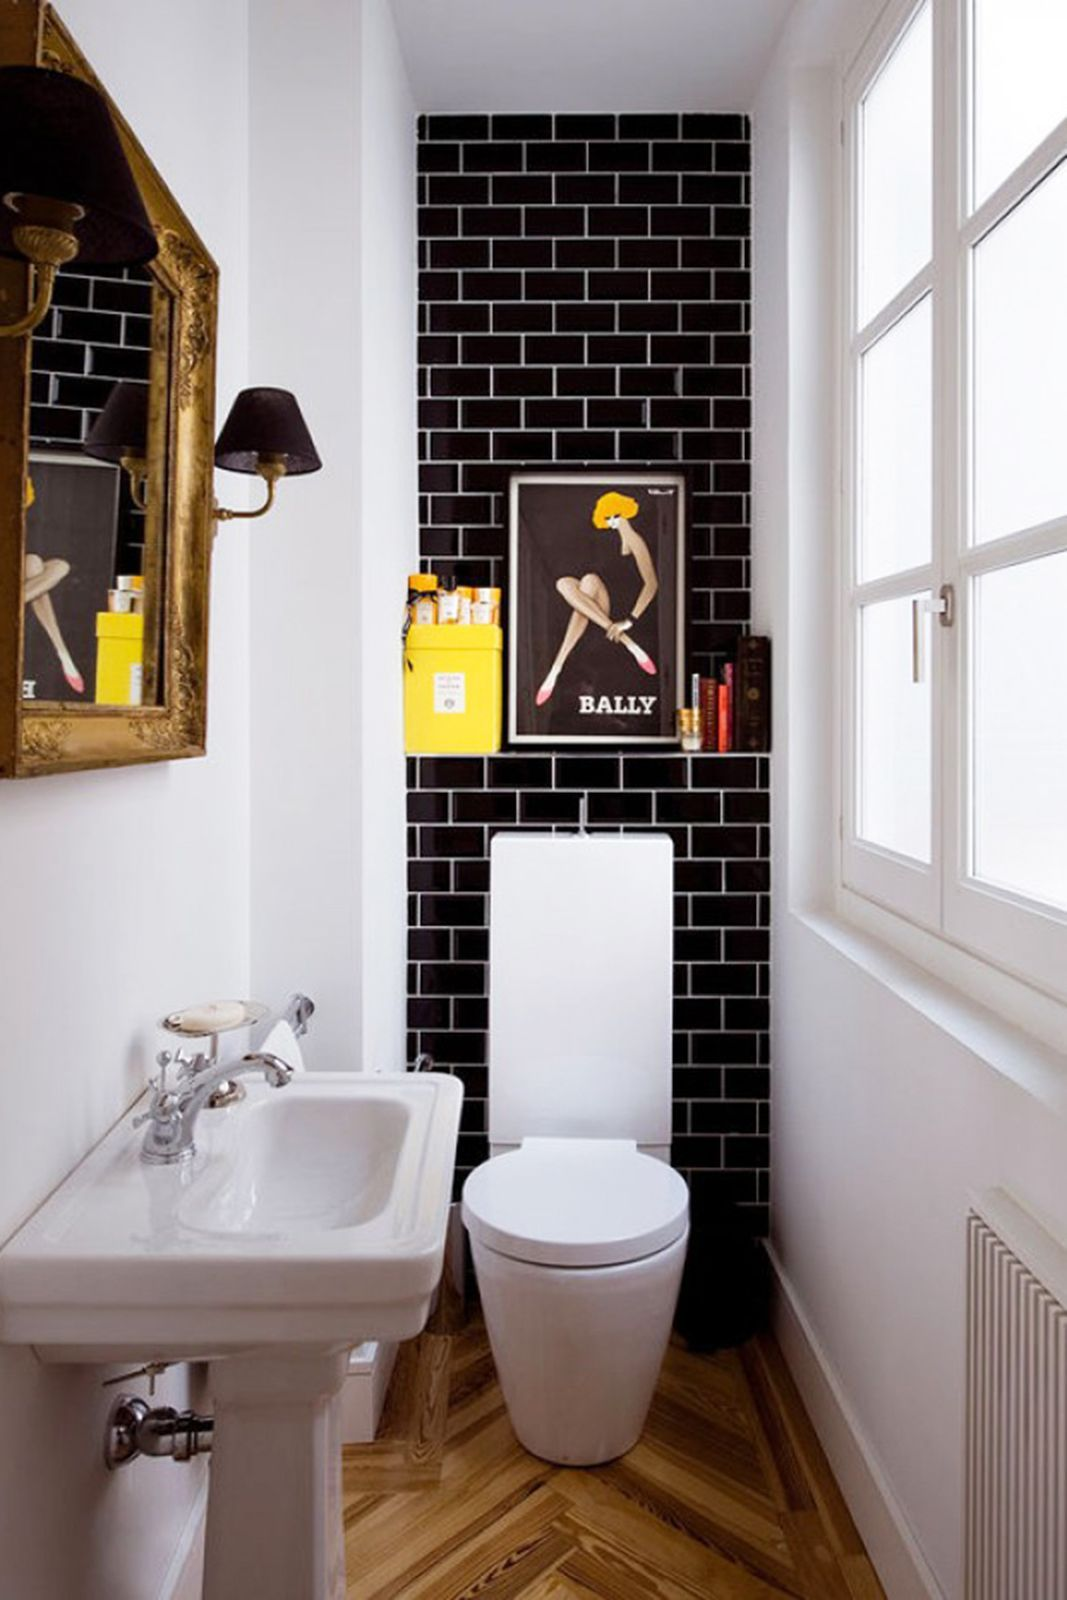 Marvelous 6 Easy Ways To Make Your Small Bathroom Feel Luxurious